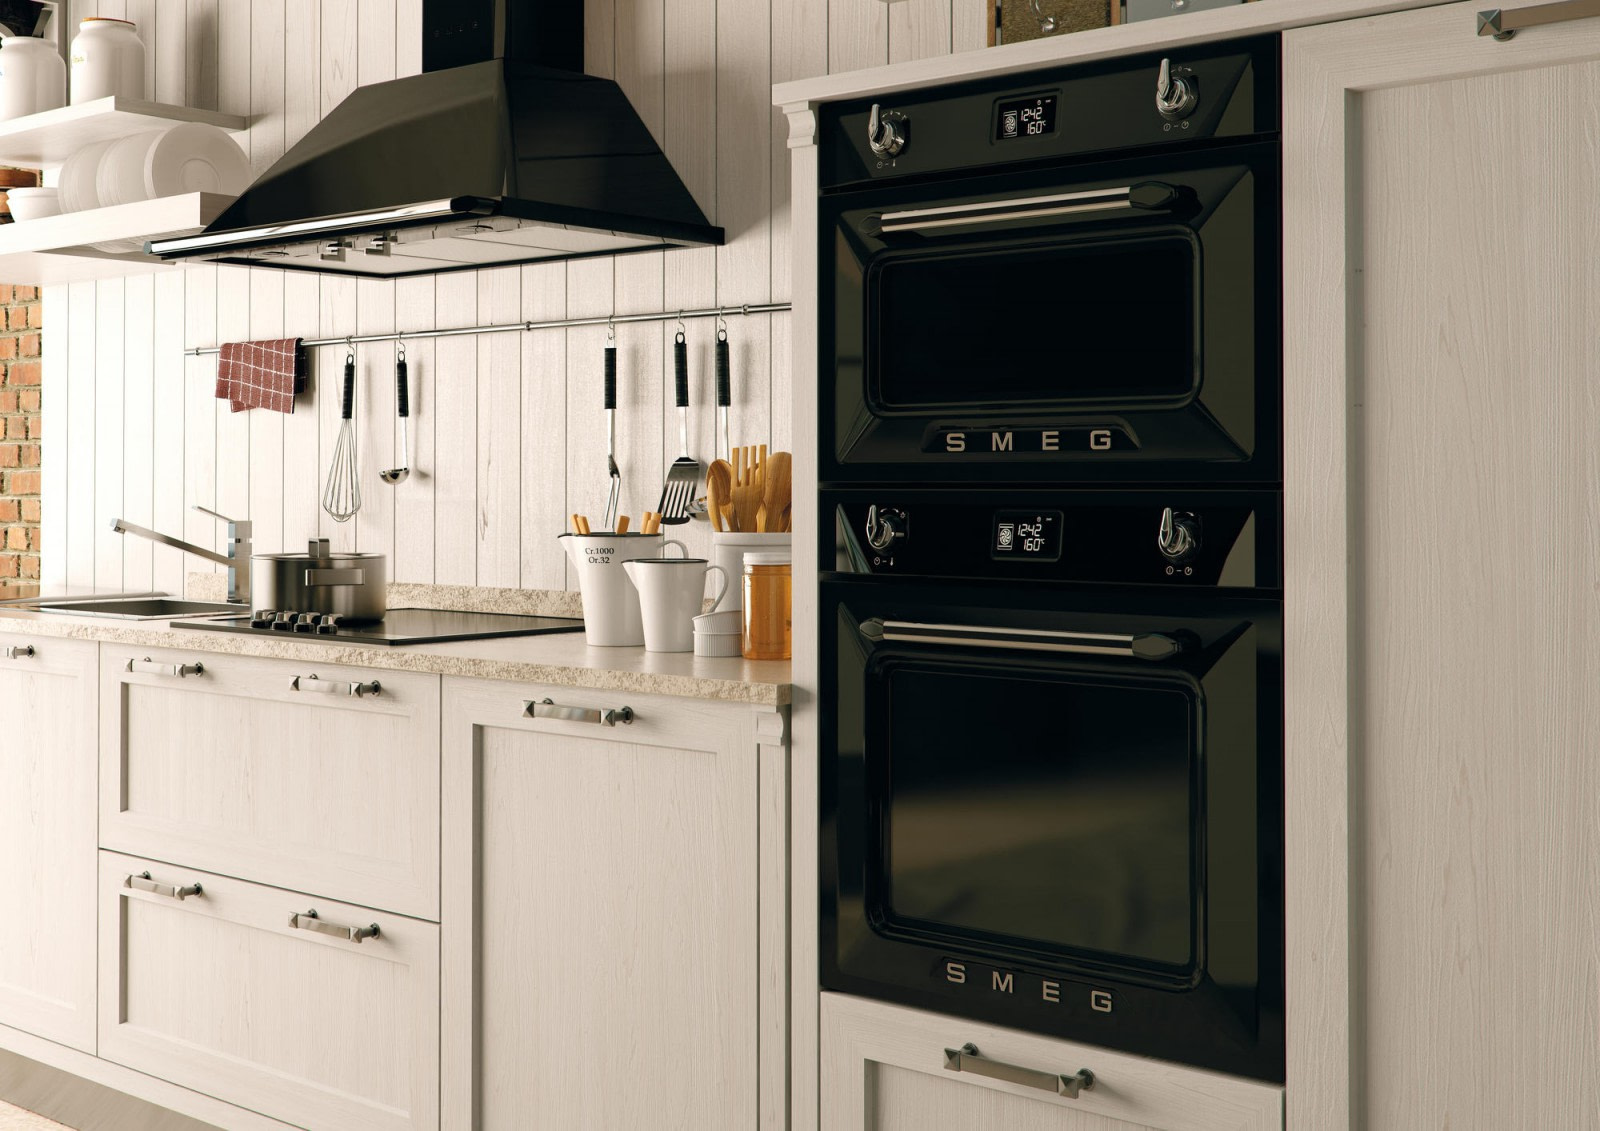 Appliance City Introduces the New Smeg Victoria Built In Range